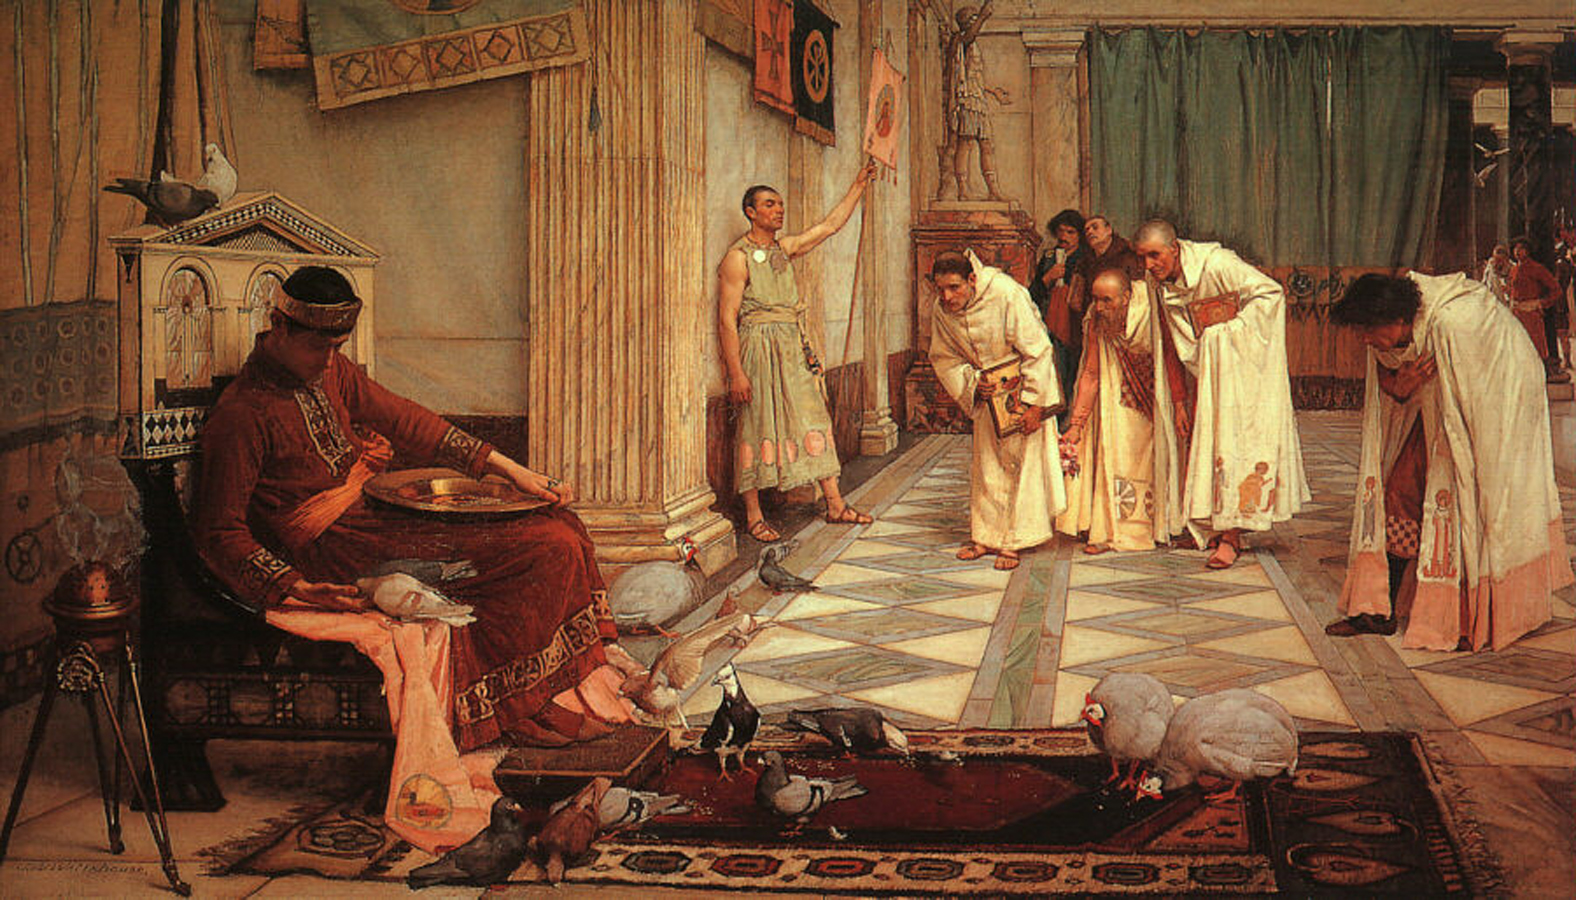 The Favorites of the Emperor Honorius. John William Waterhouse, 1883